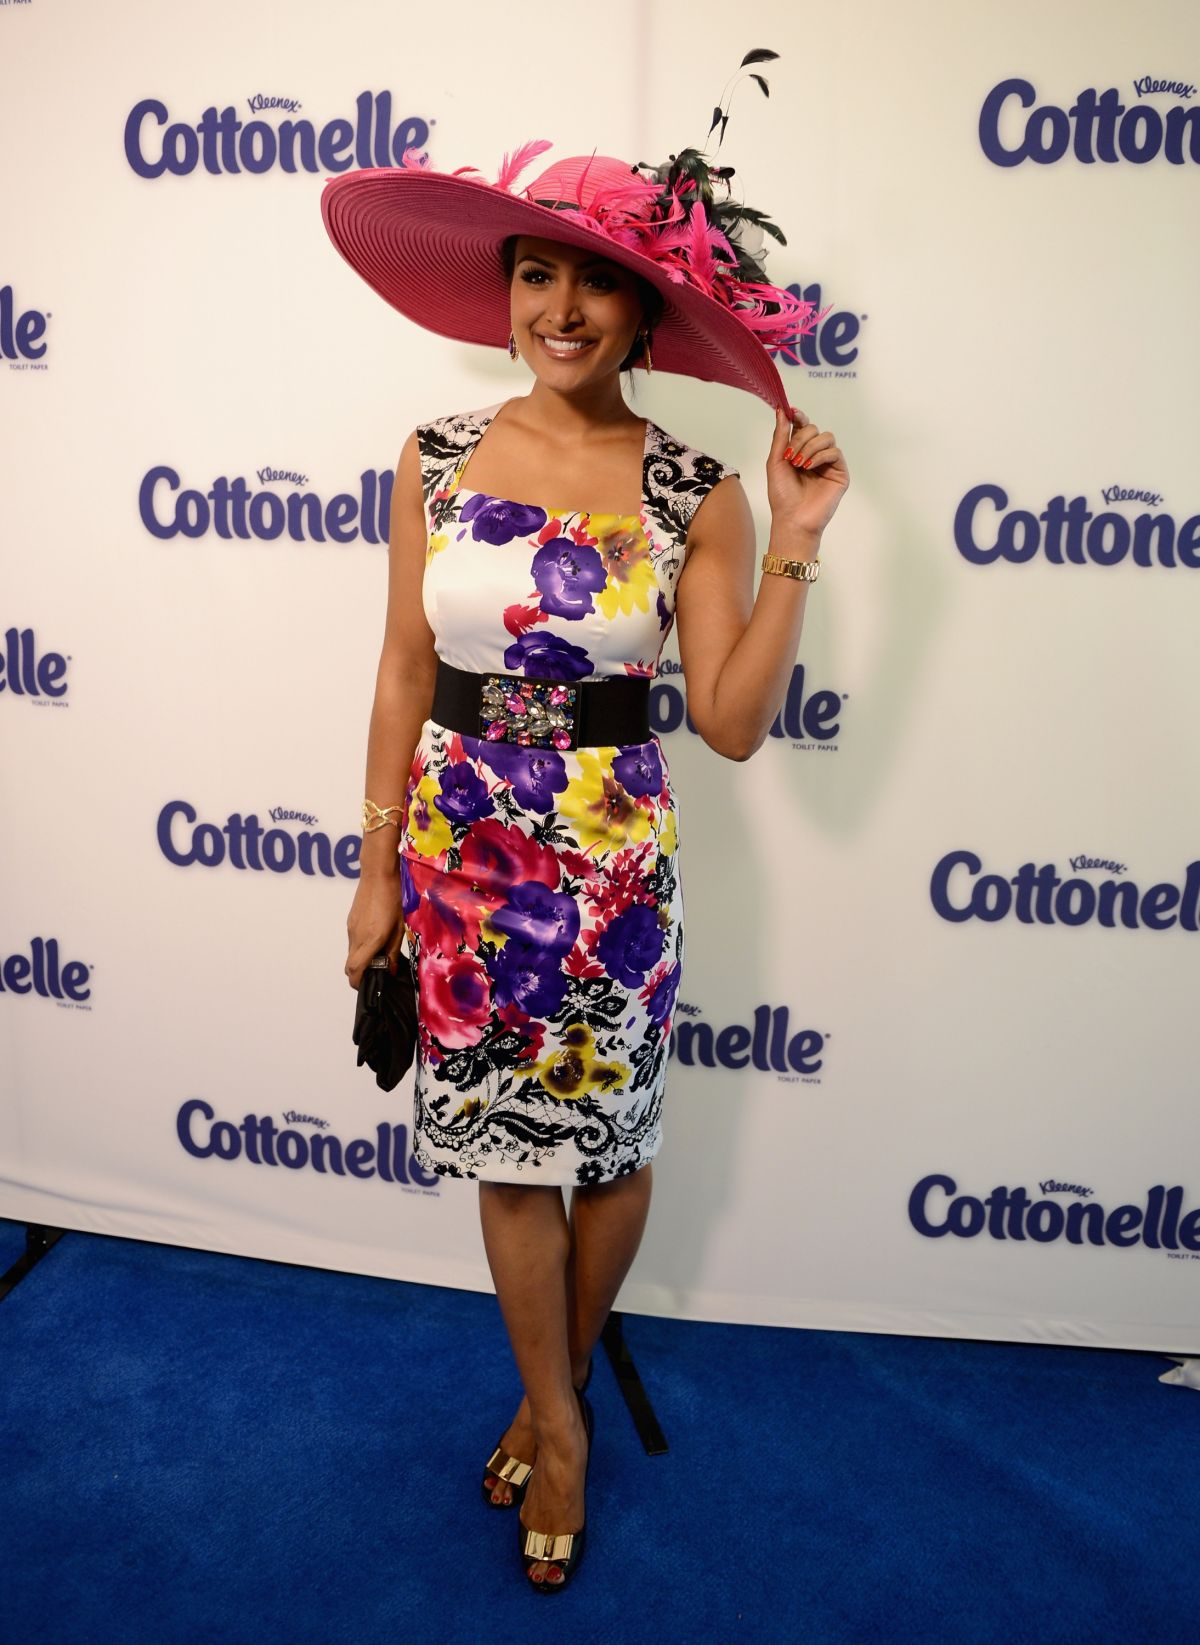 NINA DAVULURI at 140th Kentucky Derby